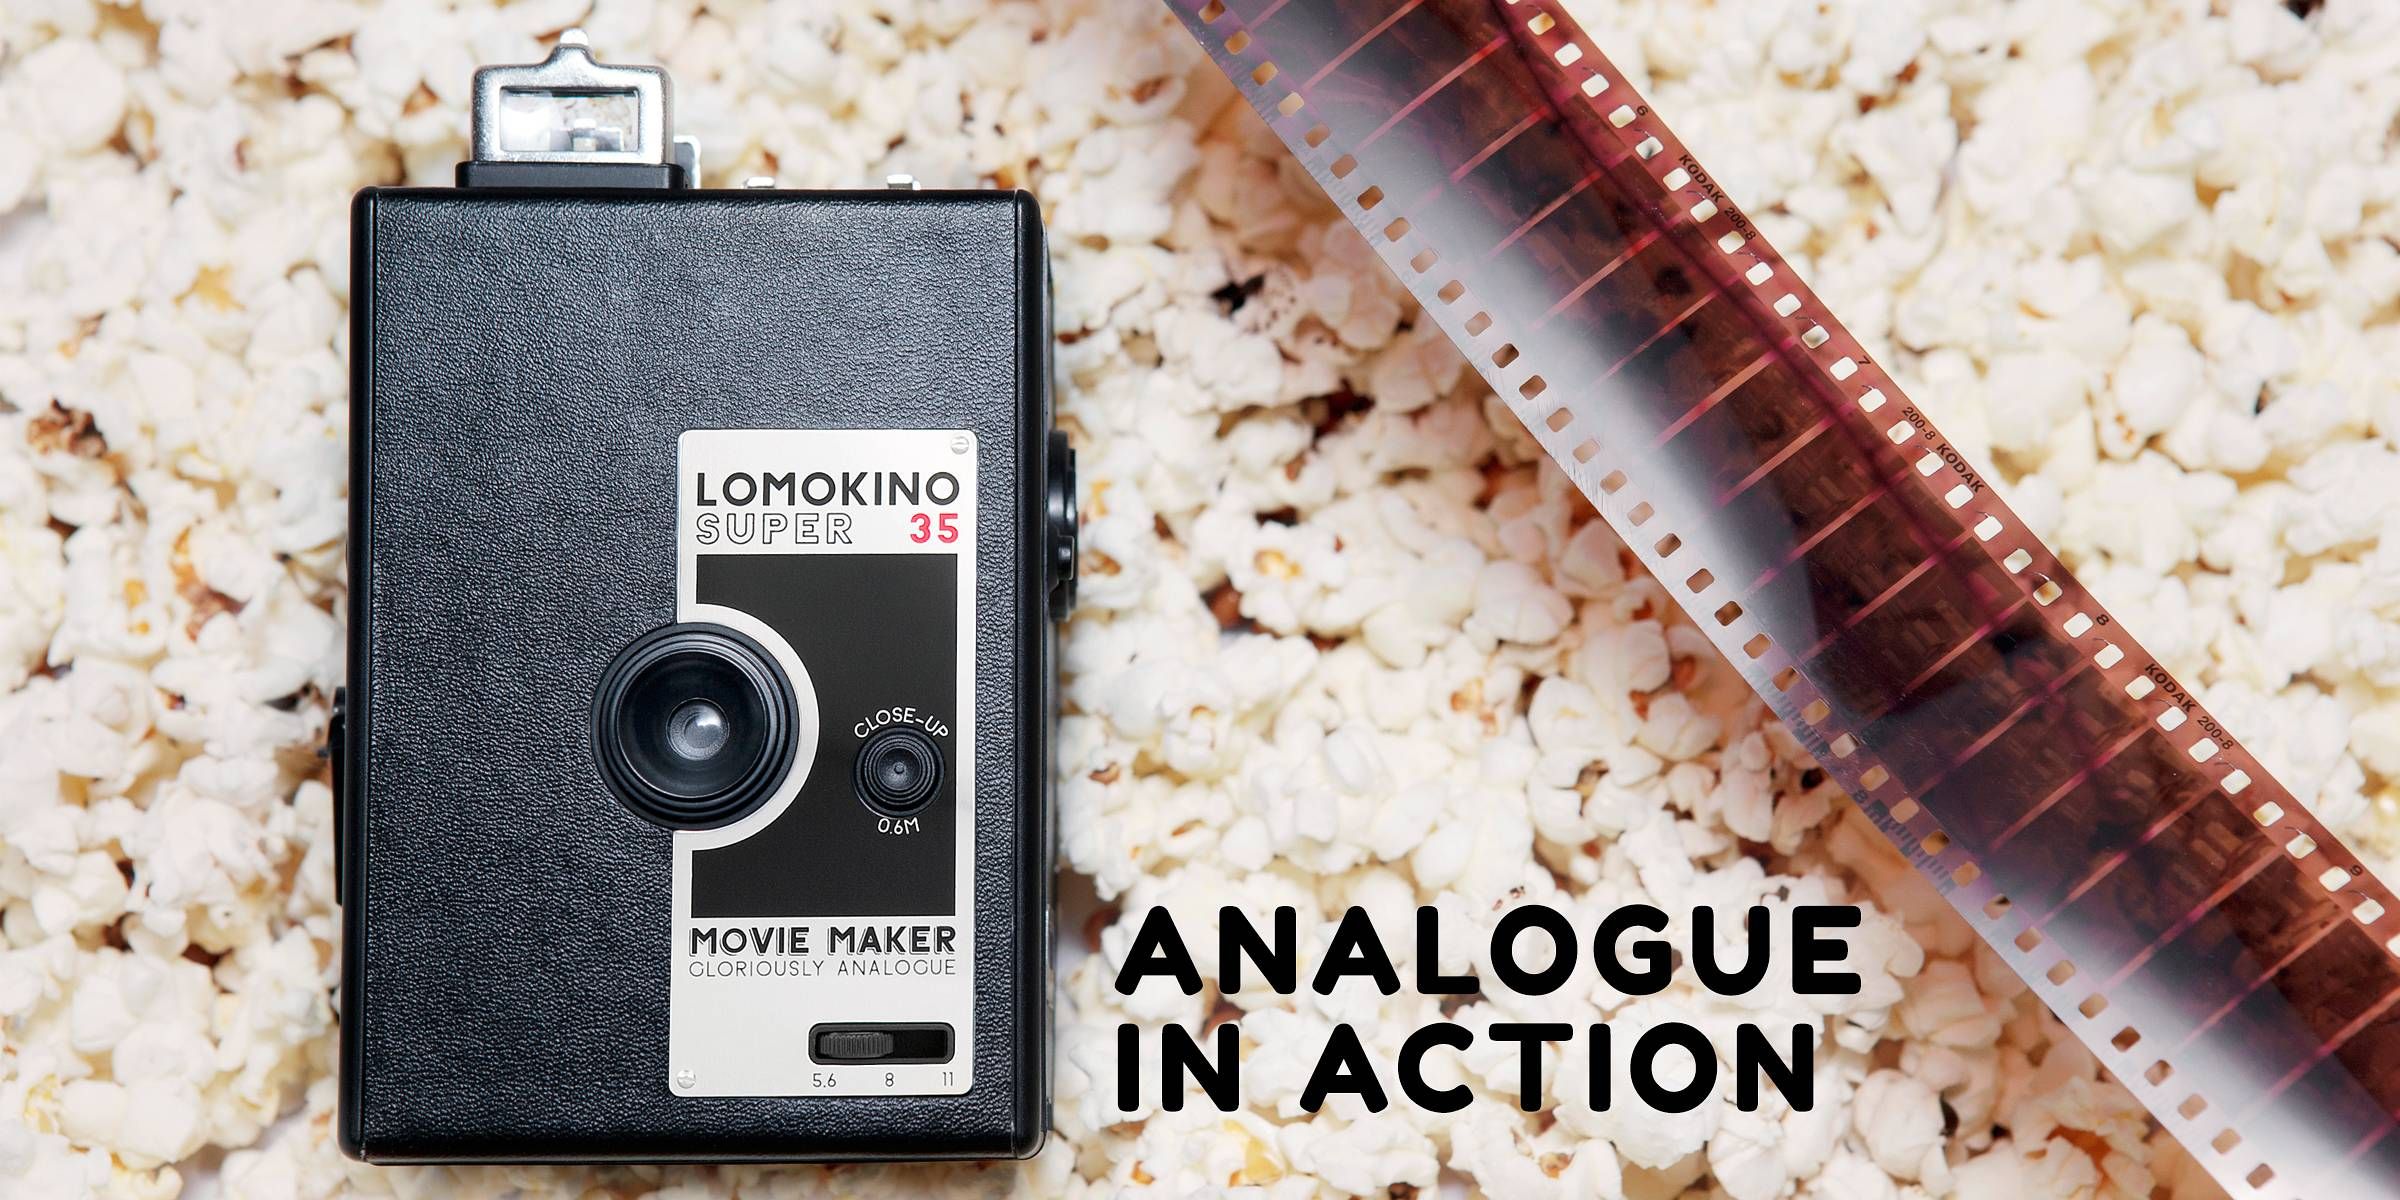 Make a Movie on 35 mm with the LomoKino